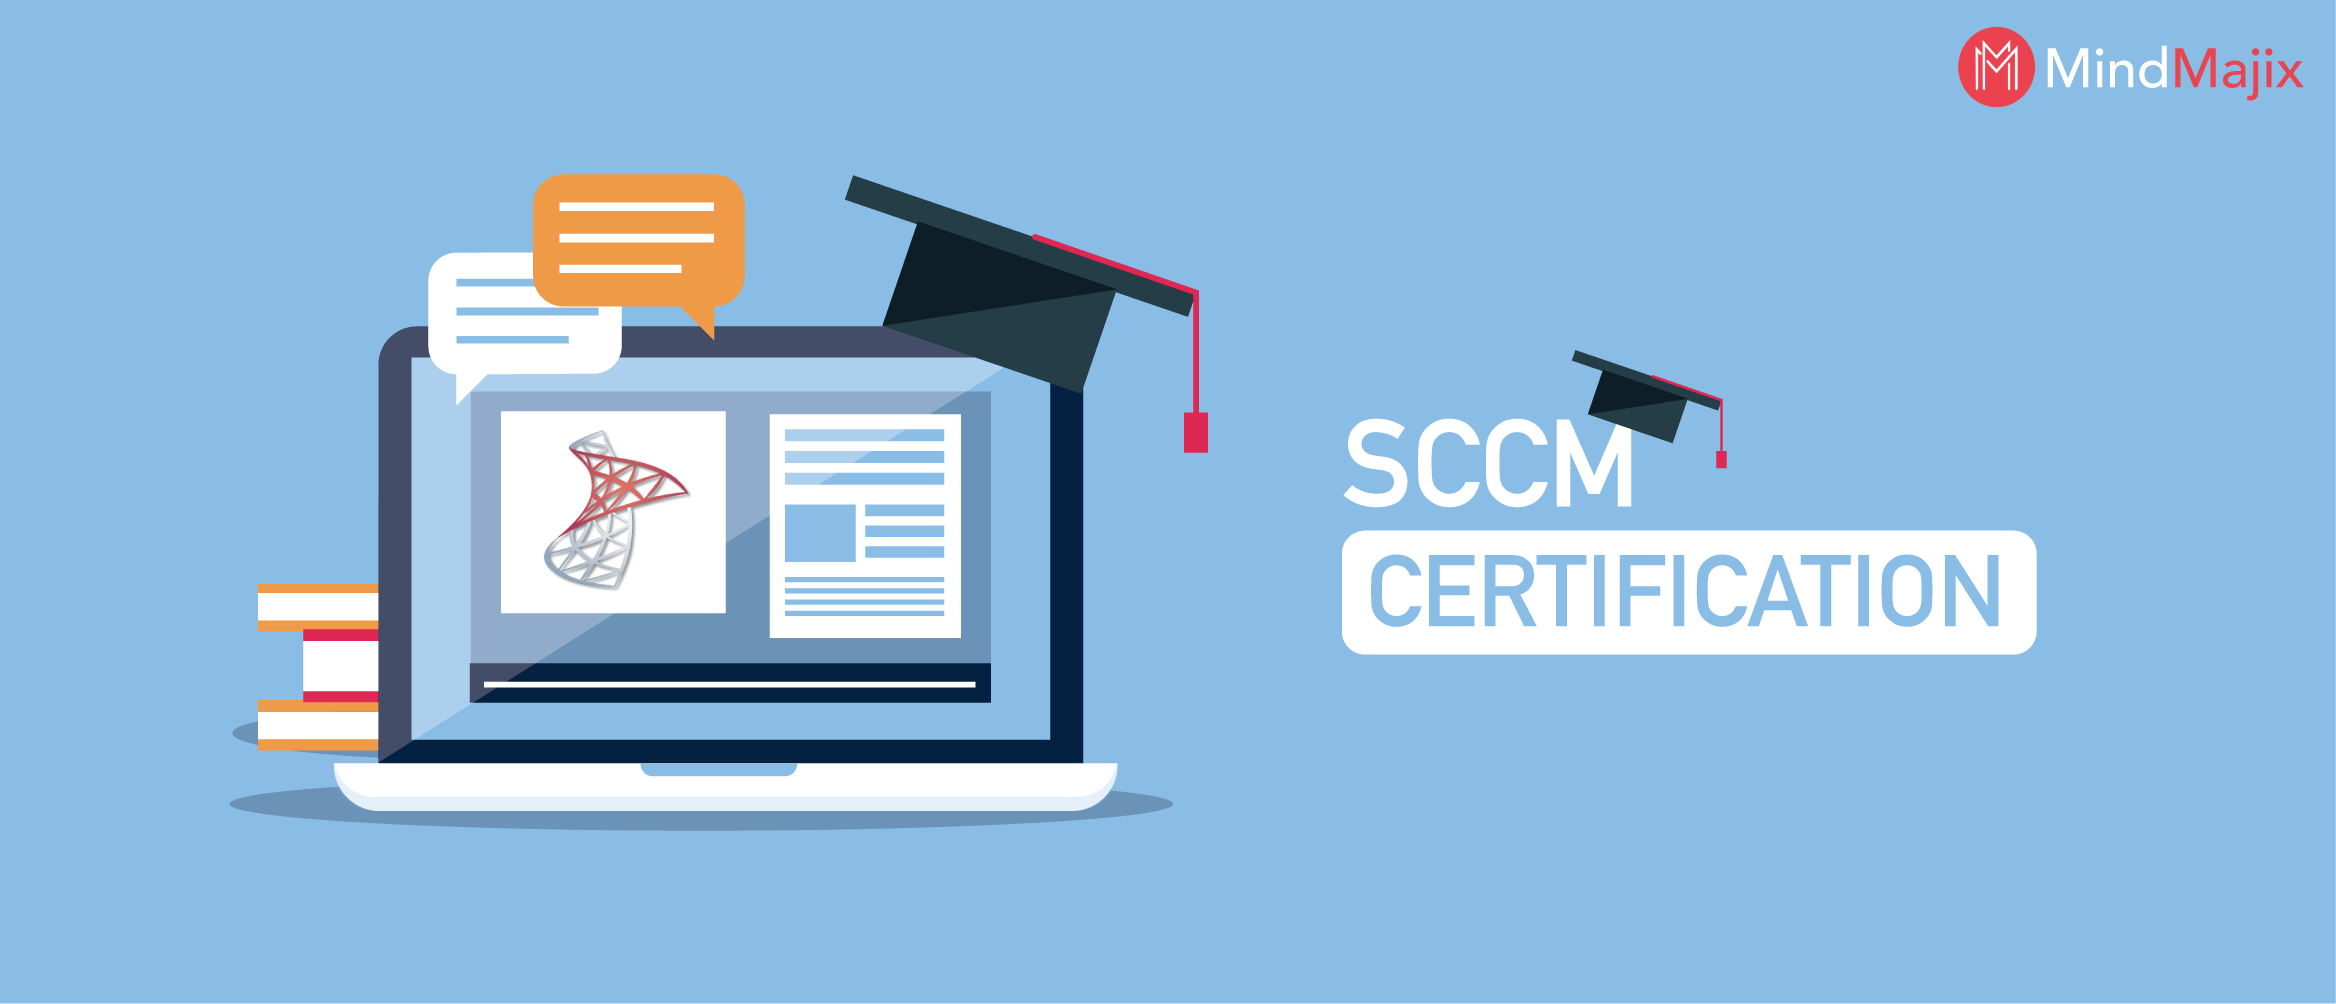 SCCM CERTIFICATION